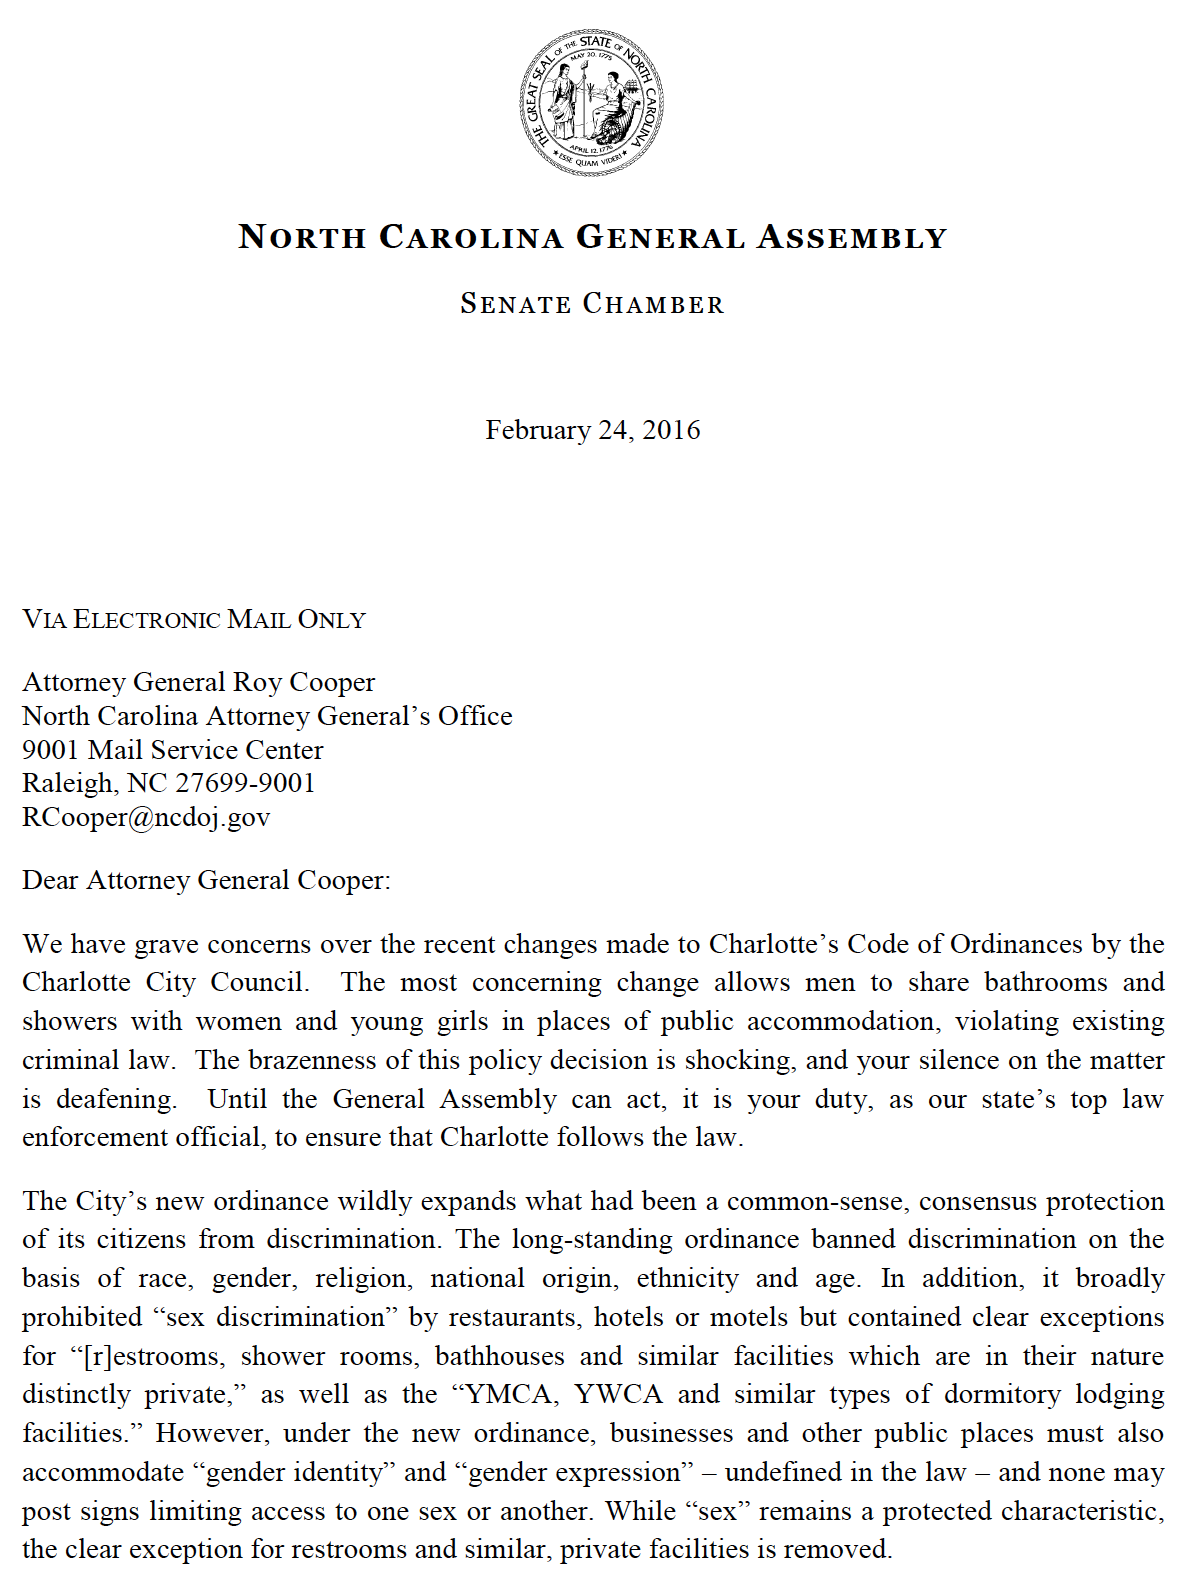 AG-Letter-FirstPage.png